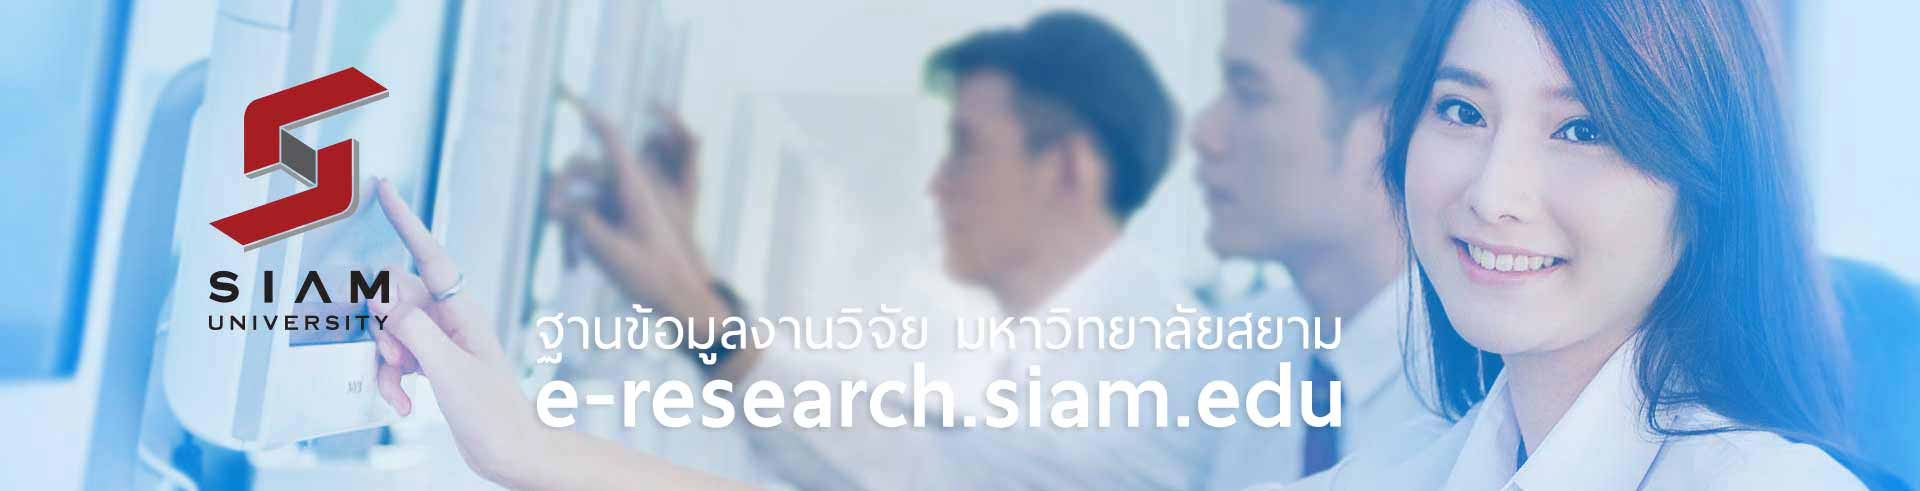 A Study of Instructors' Decision Making Styles in MBA English Program and BBA English Program at Siam University (59-0011) - ฐานข้อมูลงานวิจัย มหาวิทยาลัยสยาม